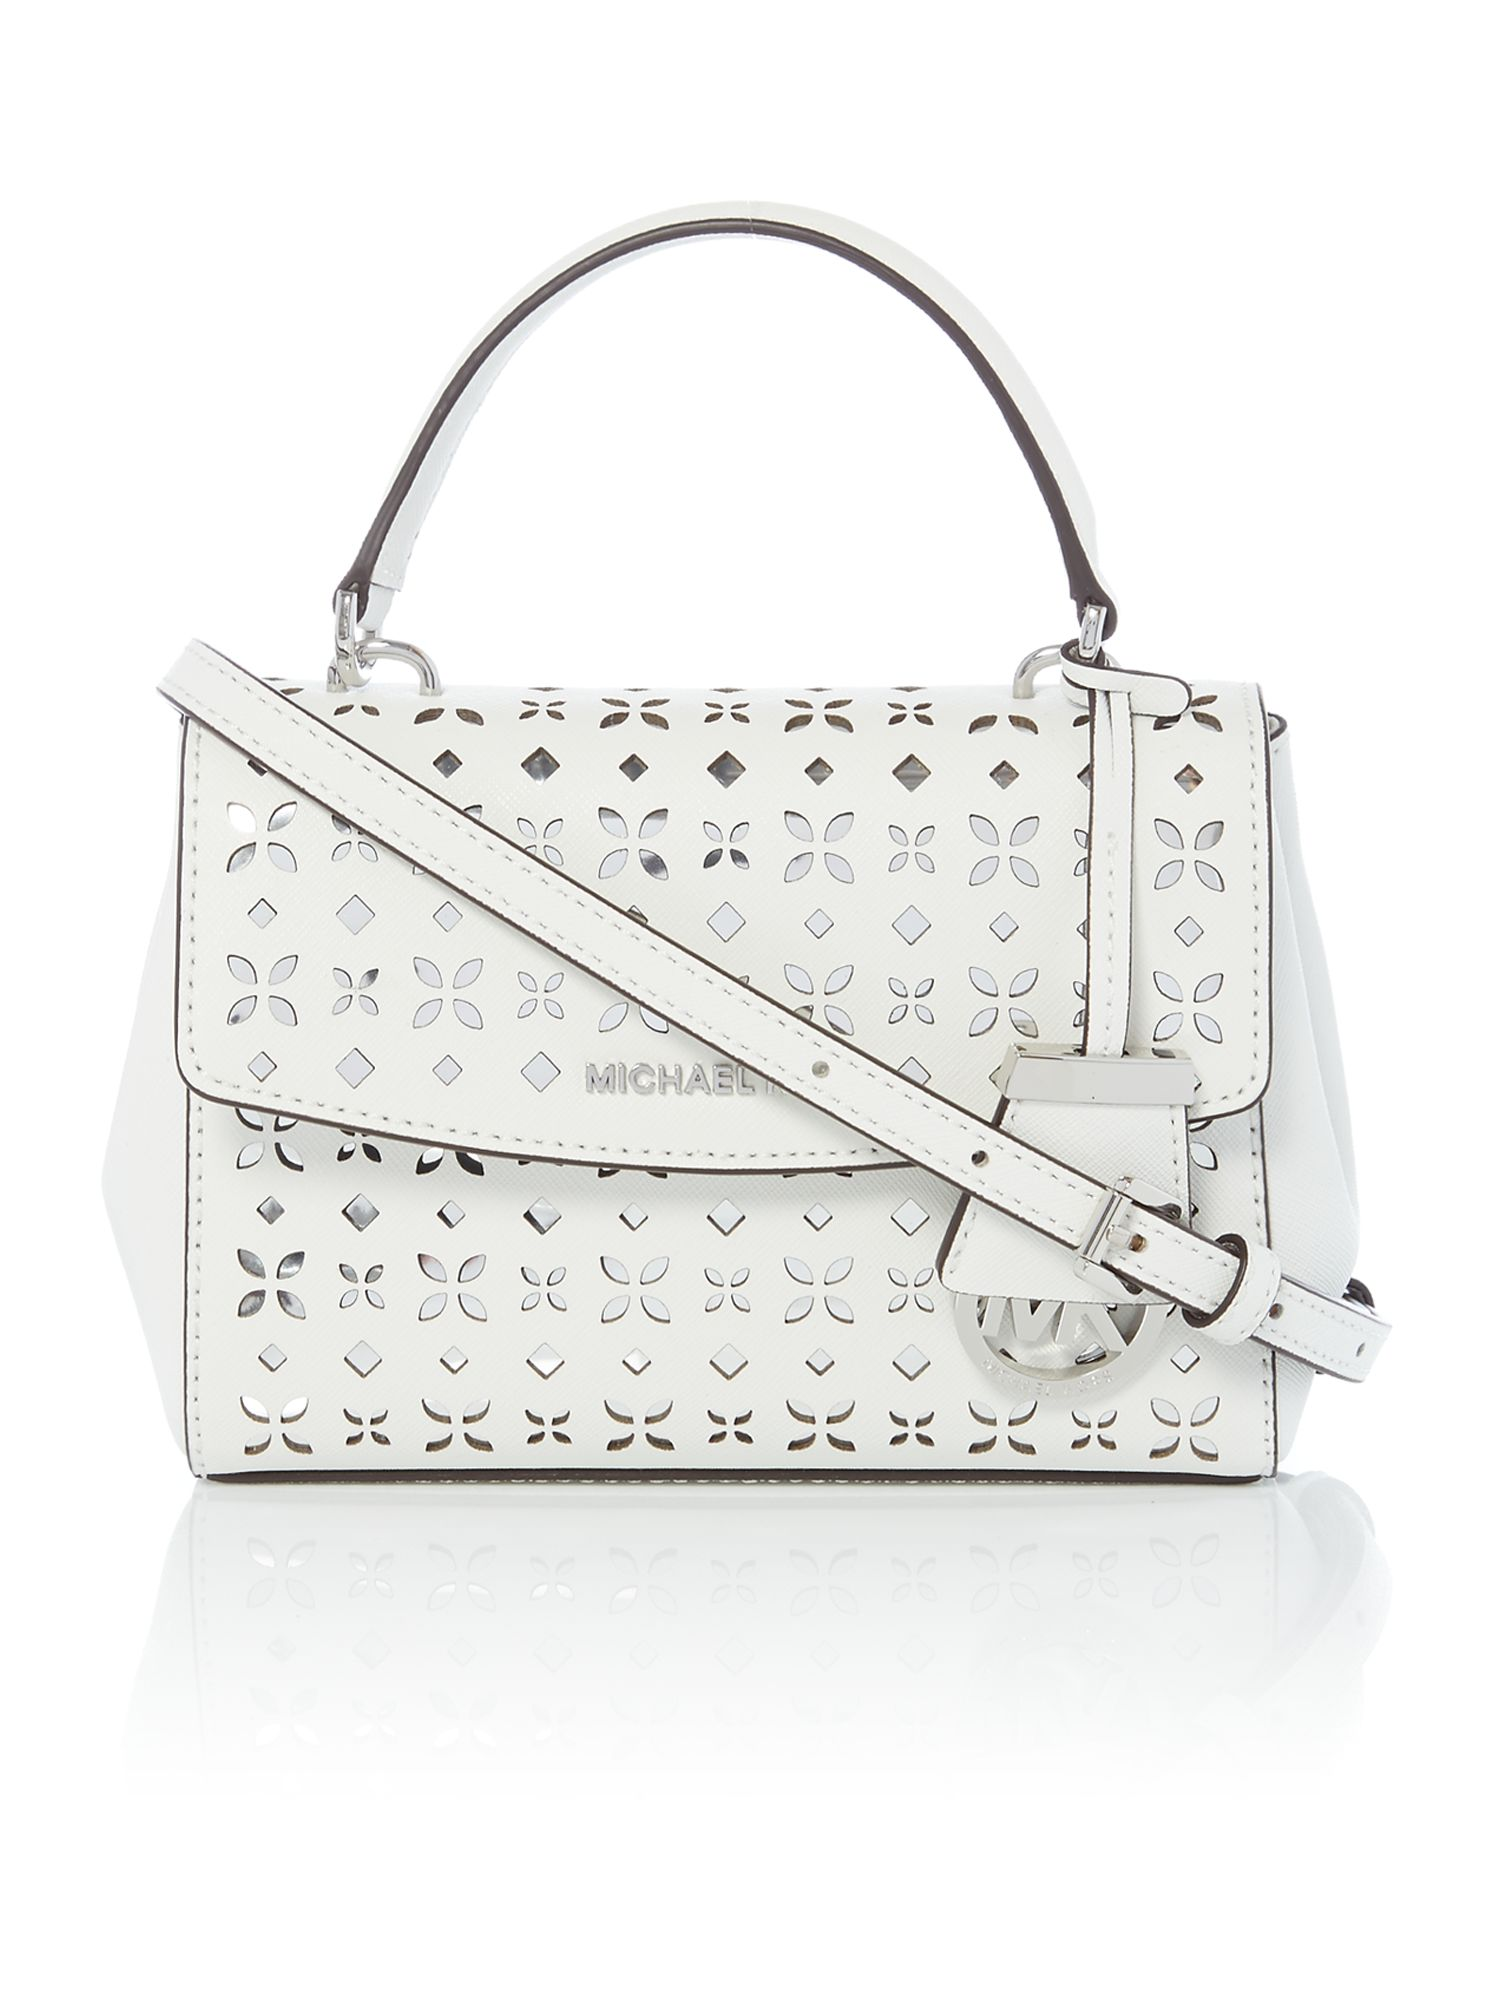 Michael Kors Ava White Mini Crossbody Satchel Bag